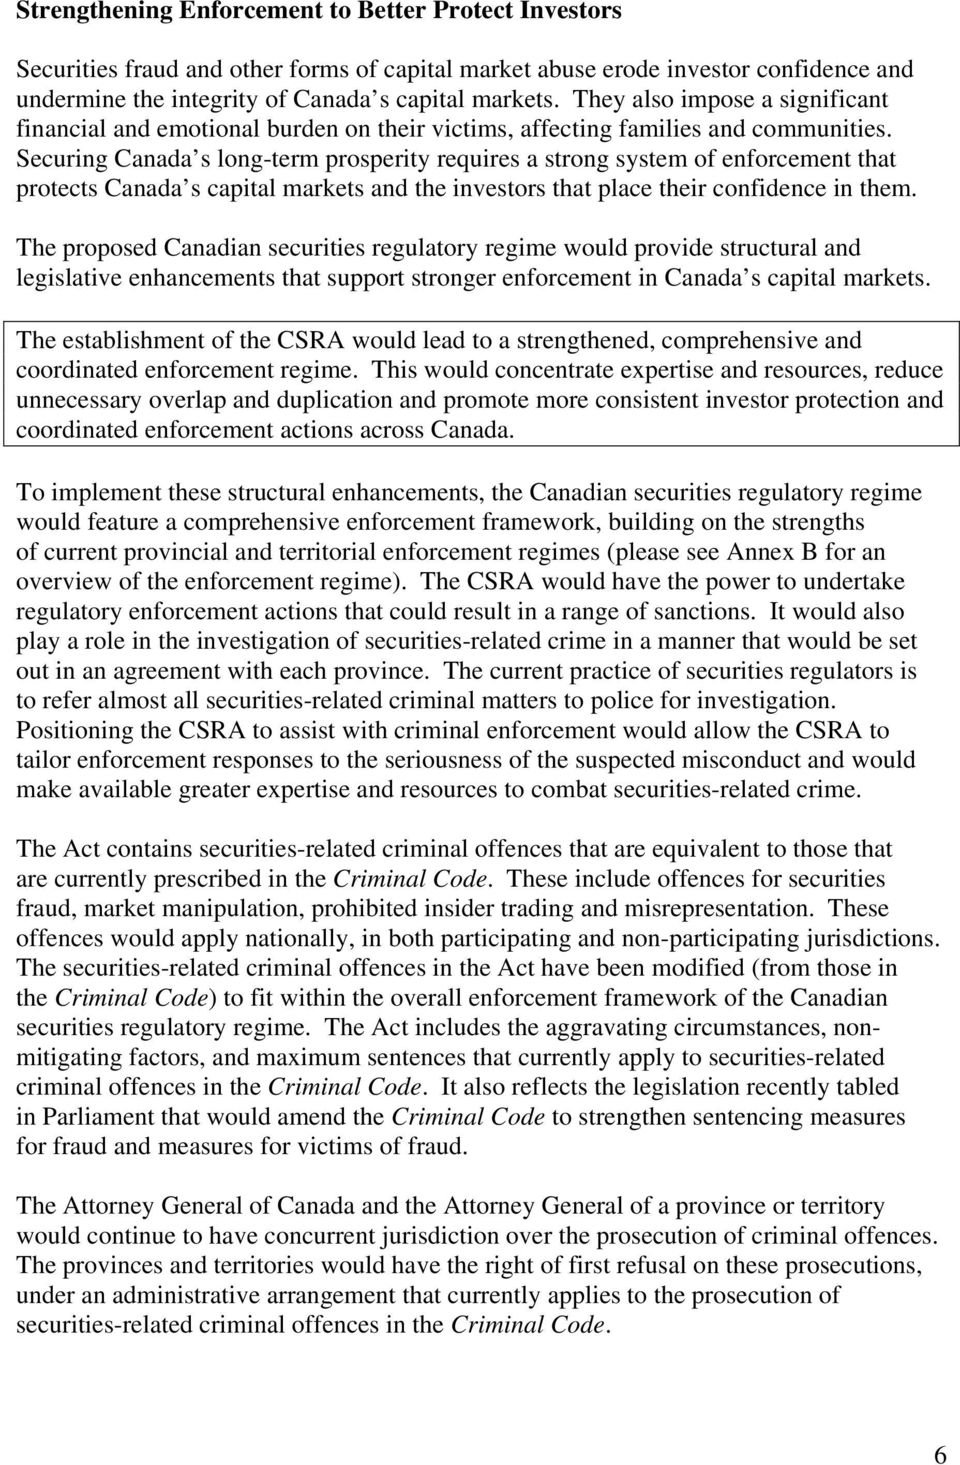 Securing Canada s long-term prosperity requires a strong system of enforcement that protects Canada s capital markets and the investors that place their confidence in them.